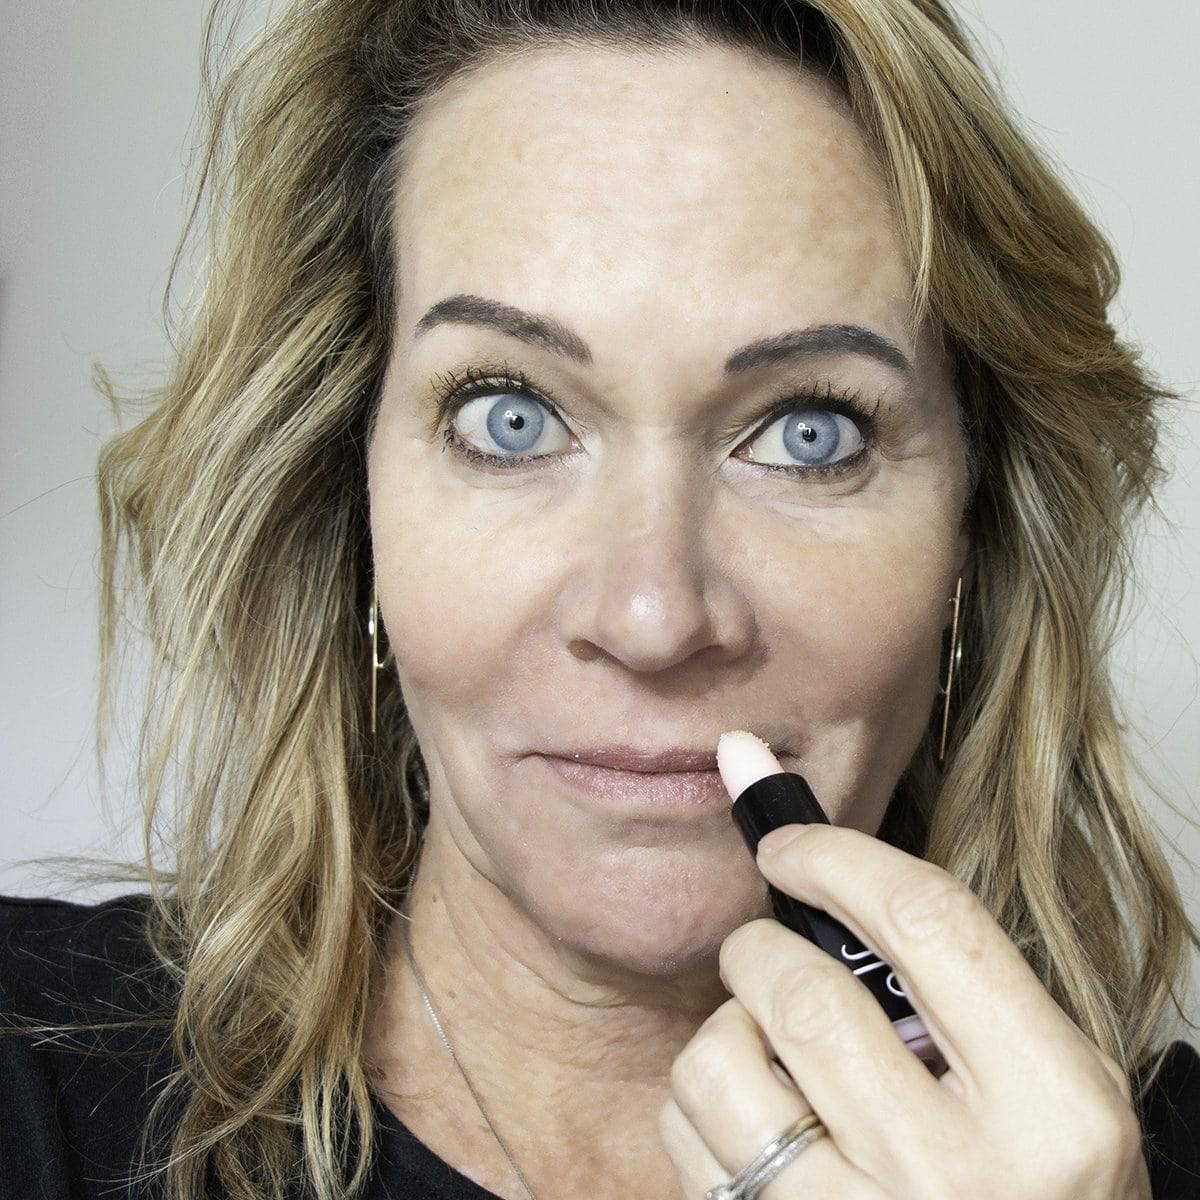 How to Stop Lipstick Bleeding into Lip Wrinkles and Smoker's Lines 5